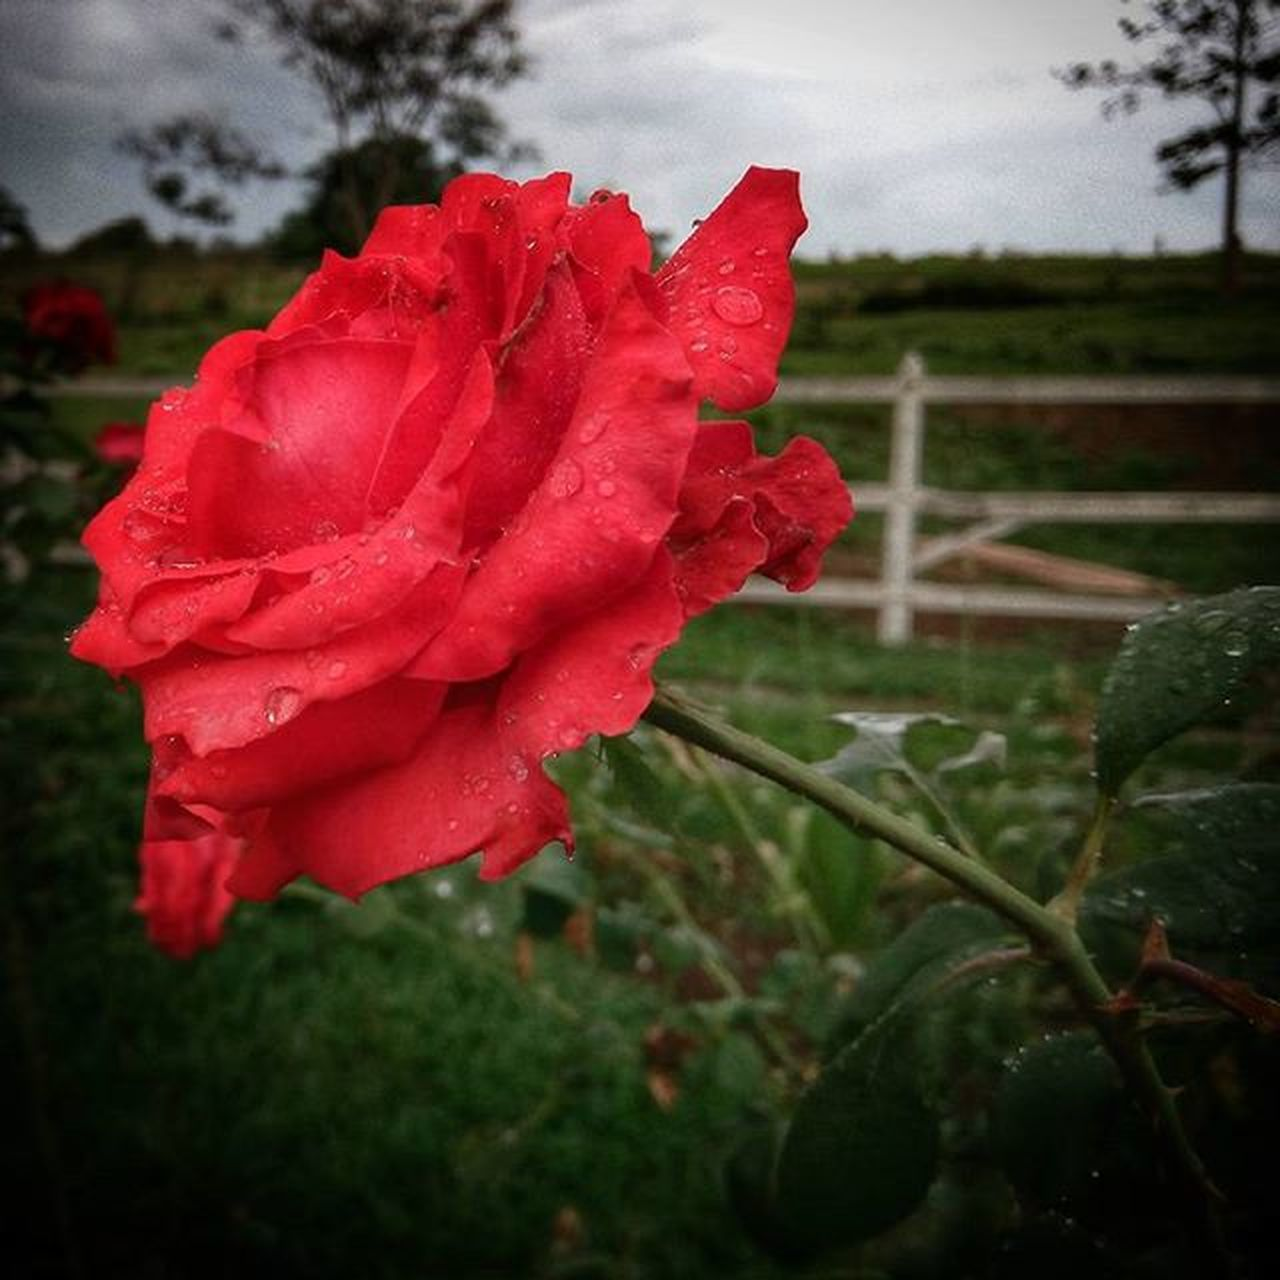 flower, petal, red, growth, drop, nature, rose - flower, beauty in nature, fragility, poppy, flower head, plant, freshness, wet, blooming, no people, close-up, outdoors, day, water, sky